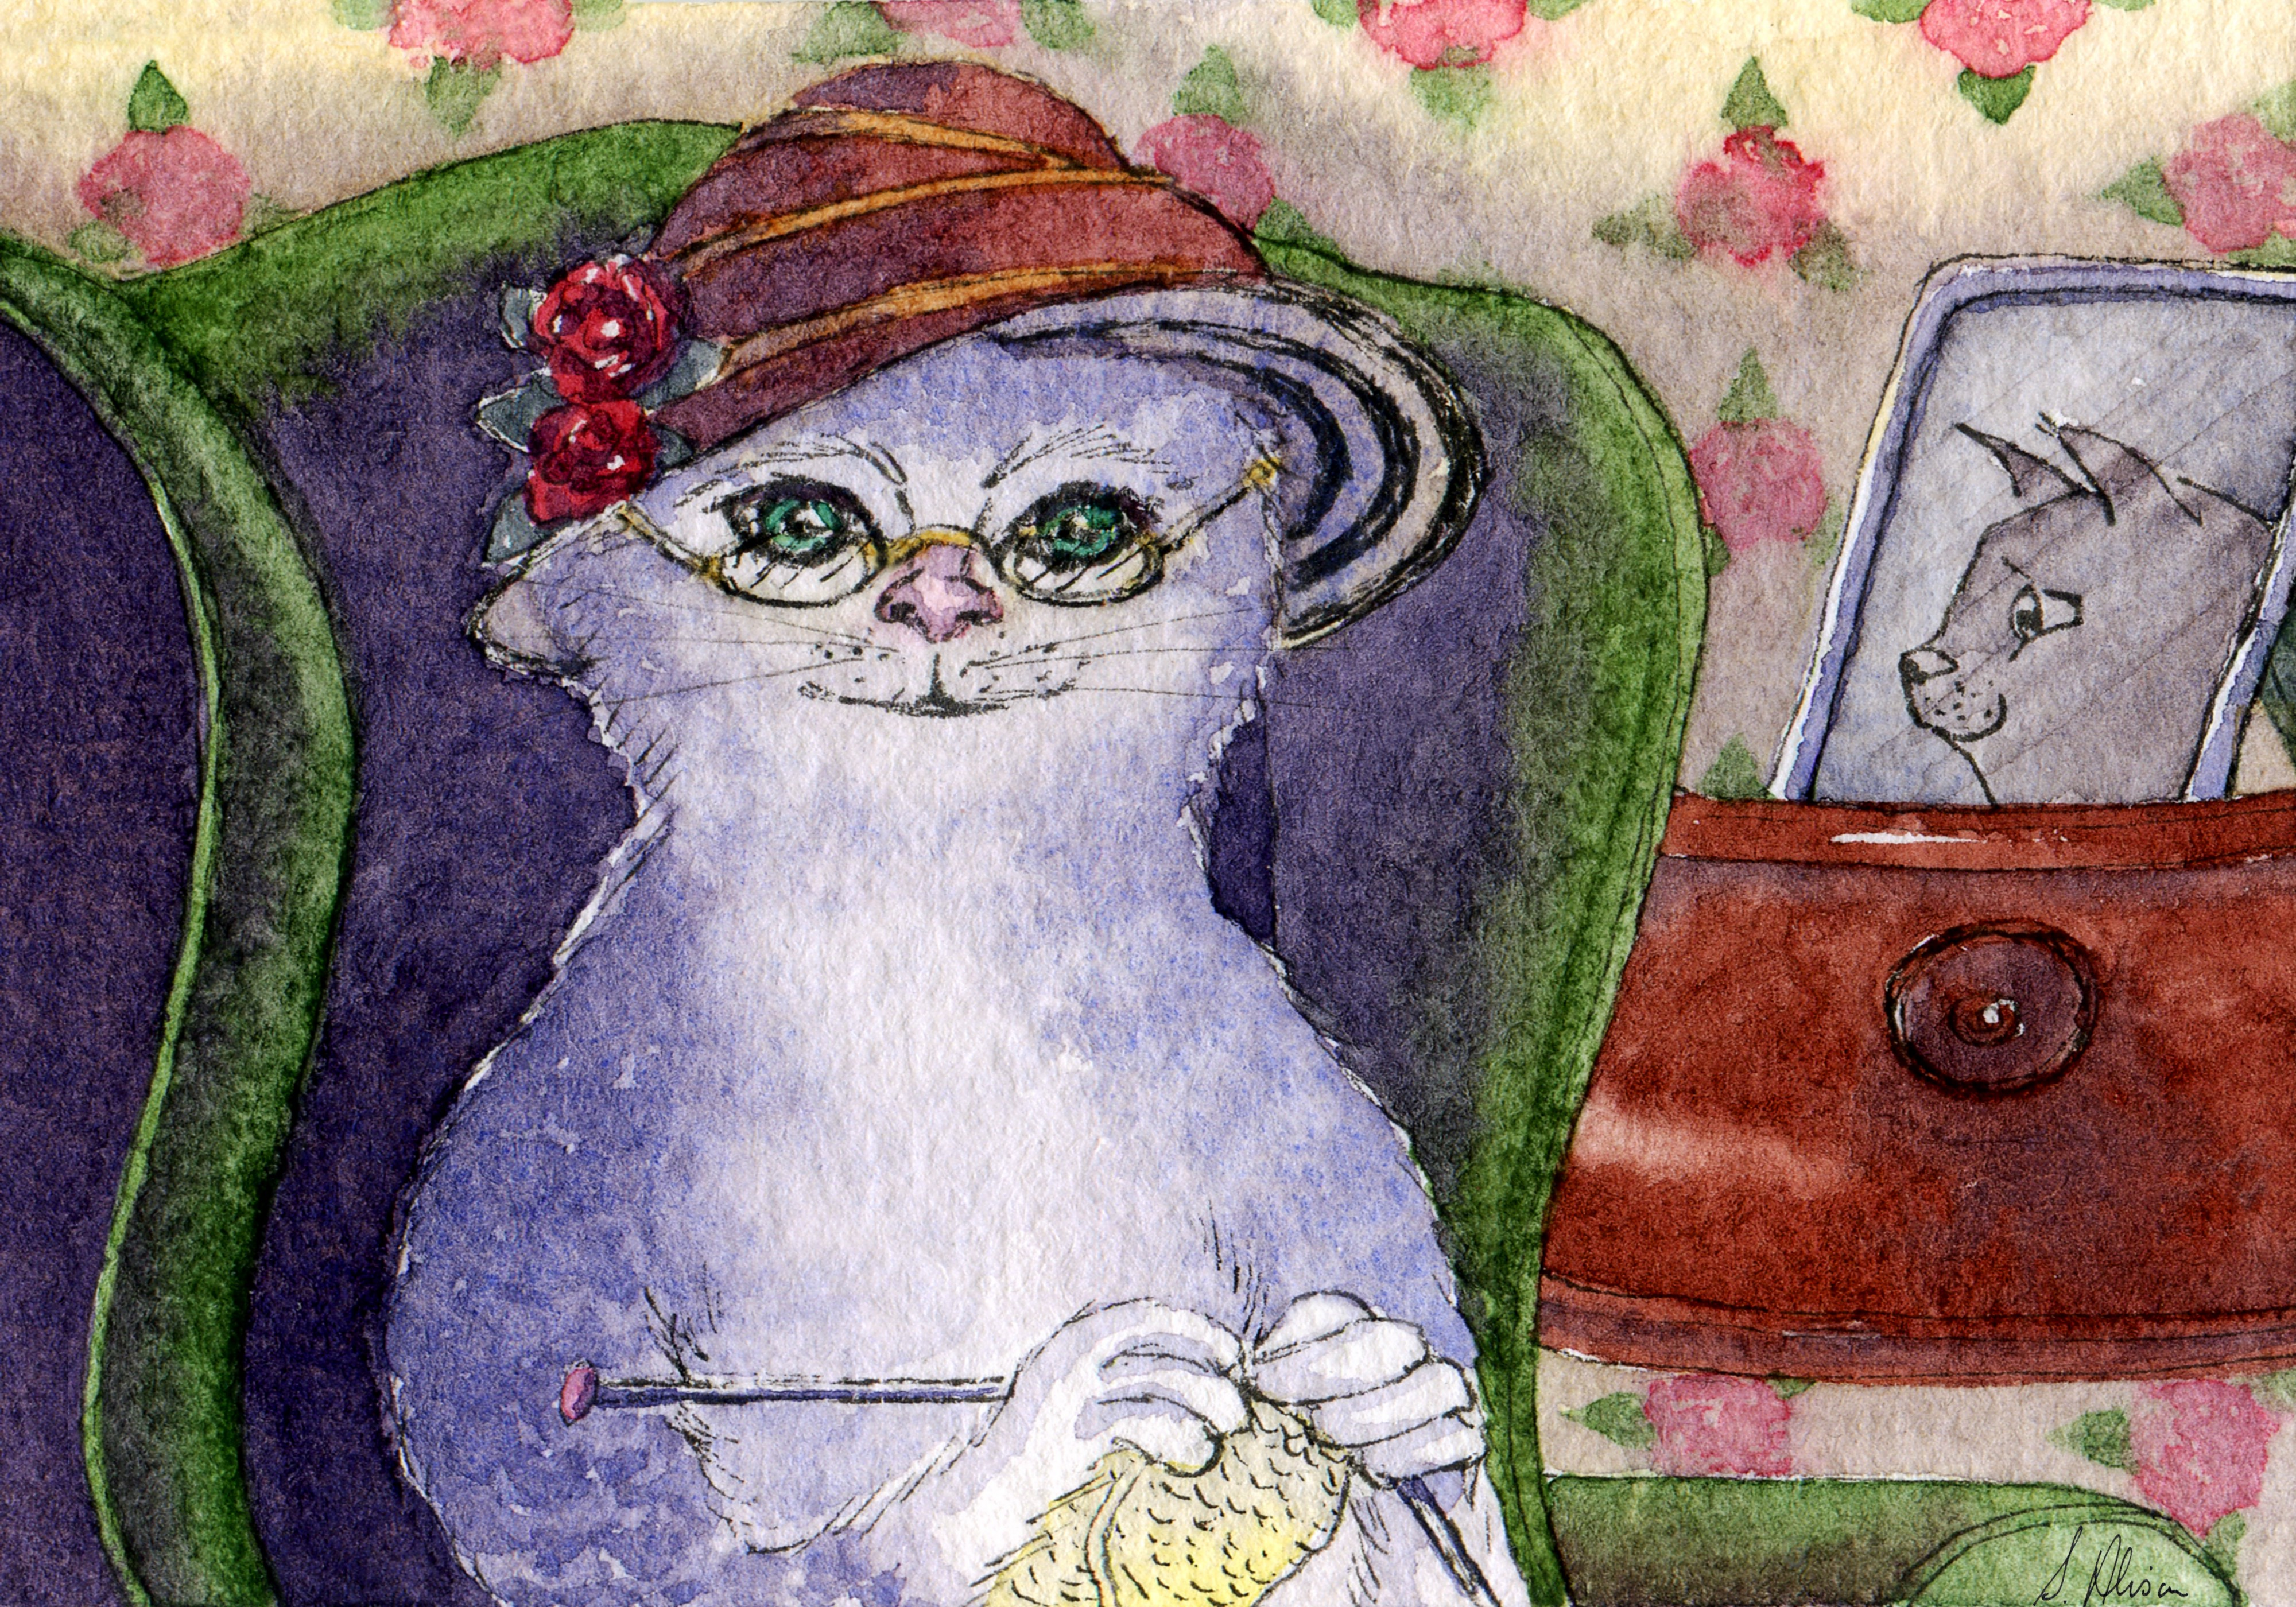 A cat in a hat sits and knits.